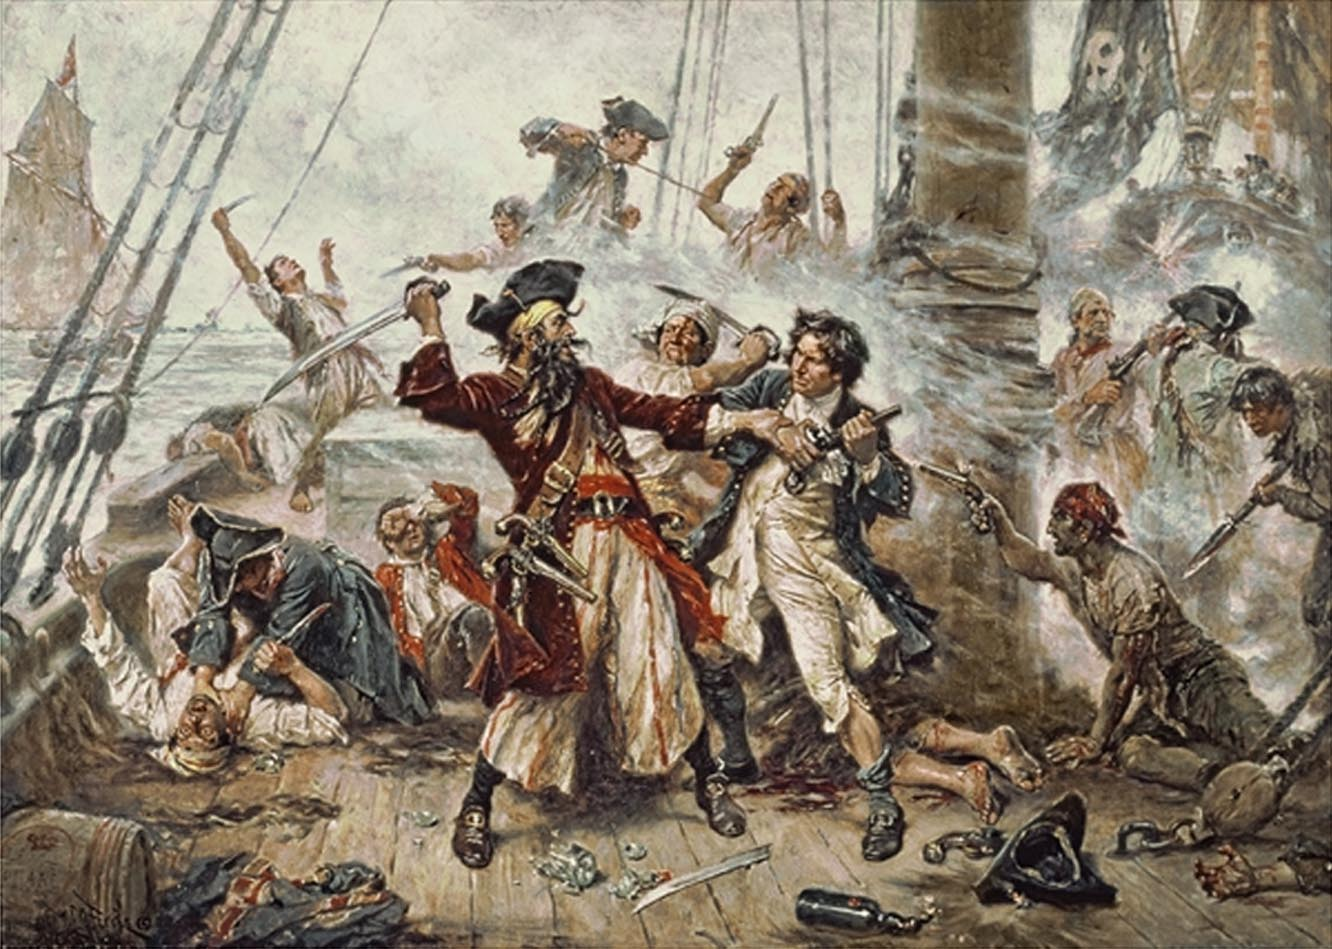 """Capture of the Pirate, Blackbeard, 1718,"" painted by Jean Leon Gerome Ferris in 1920"